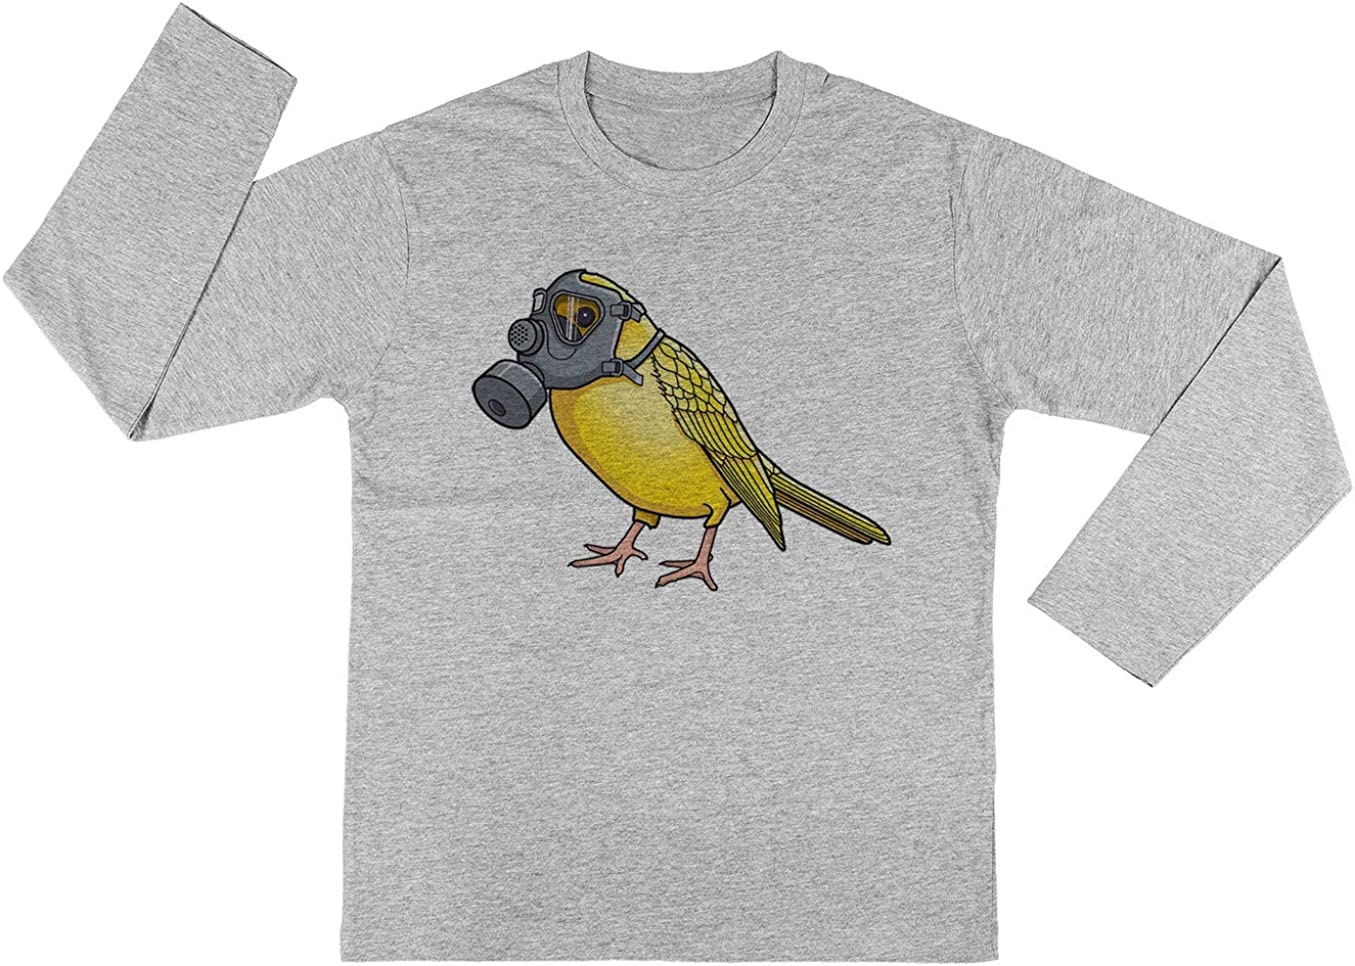 Los Aves Arent Canto Chicos Chicas Unisexo Gris Camiseta Mangas Largas Unisex T-Shirt Kids: Amazon.es: Ropa y accesorios